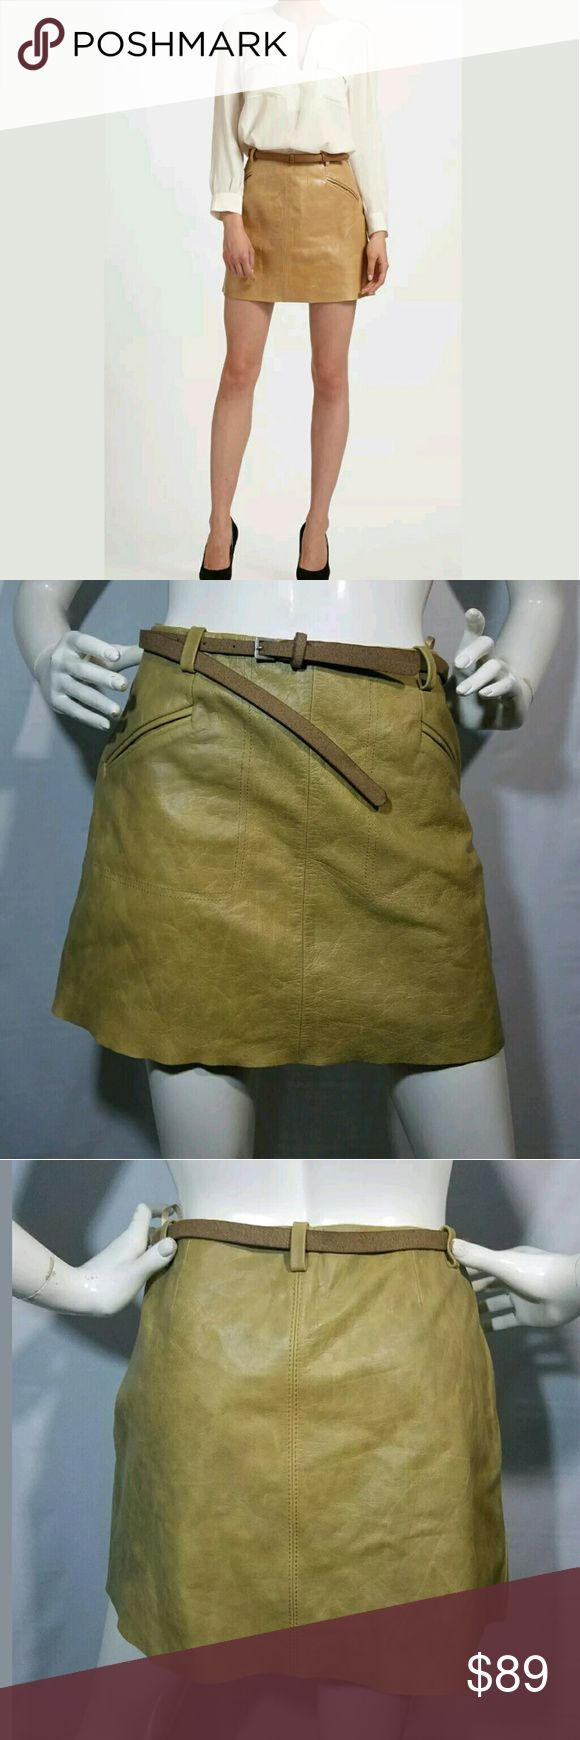 Joie Skirt Women's Size Small Cow Leather Mini Joie Skirt Women's Size Small Cow Leather Mini Belt Dune NWT $298  New skirt. Pockets. 100% Cow Leather.  Small spot of discoloration (see Pic).  29 inch waist.  14.75 inches long.  40 inch hips.   LB Joie Skirts Mini